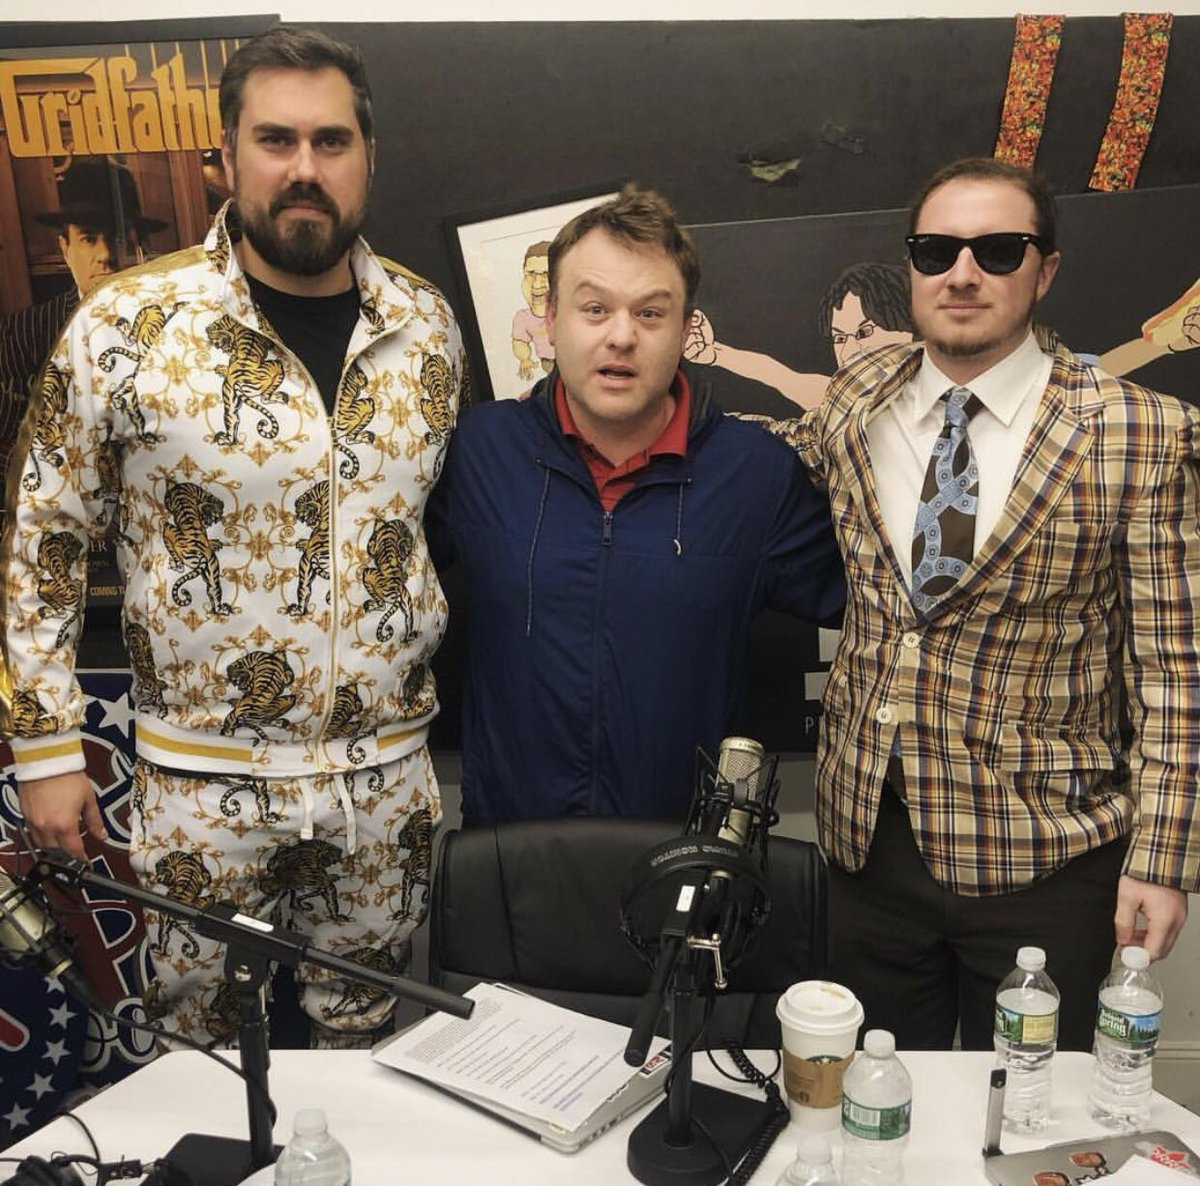 4b36b9fcadf Pardon My Take on Twitter